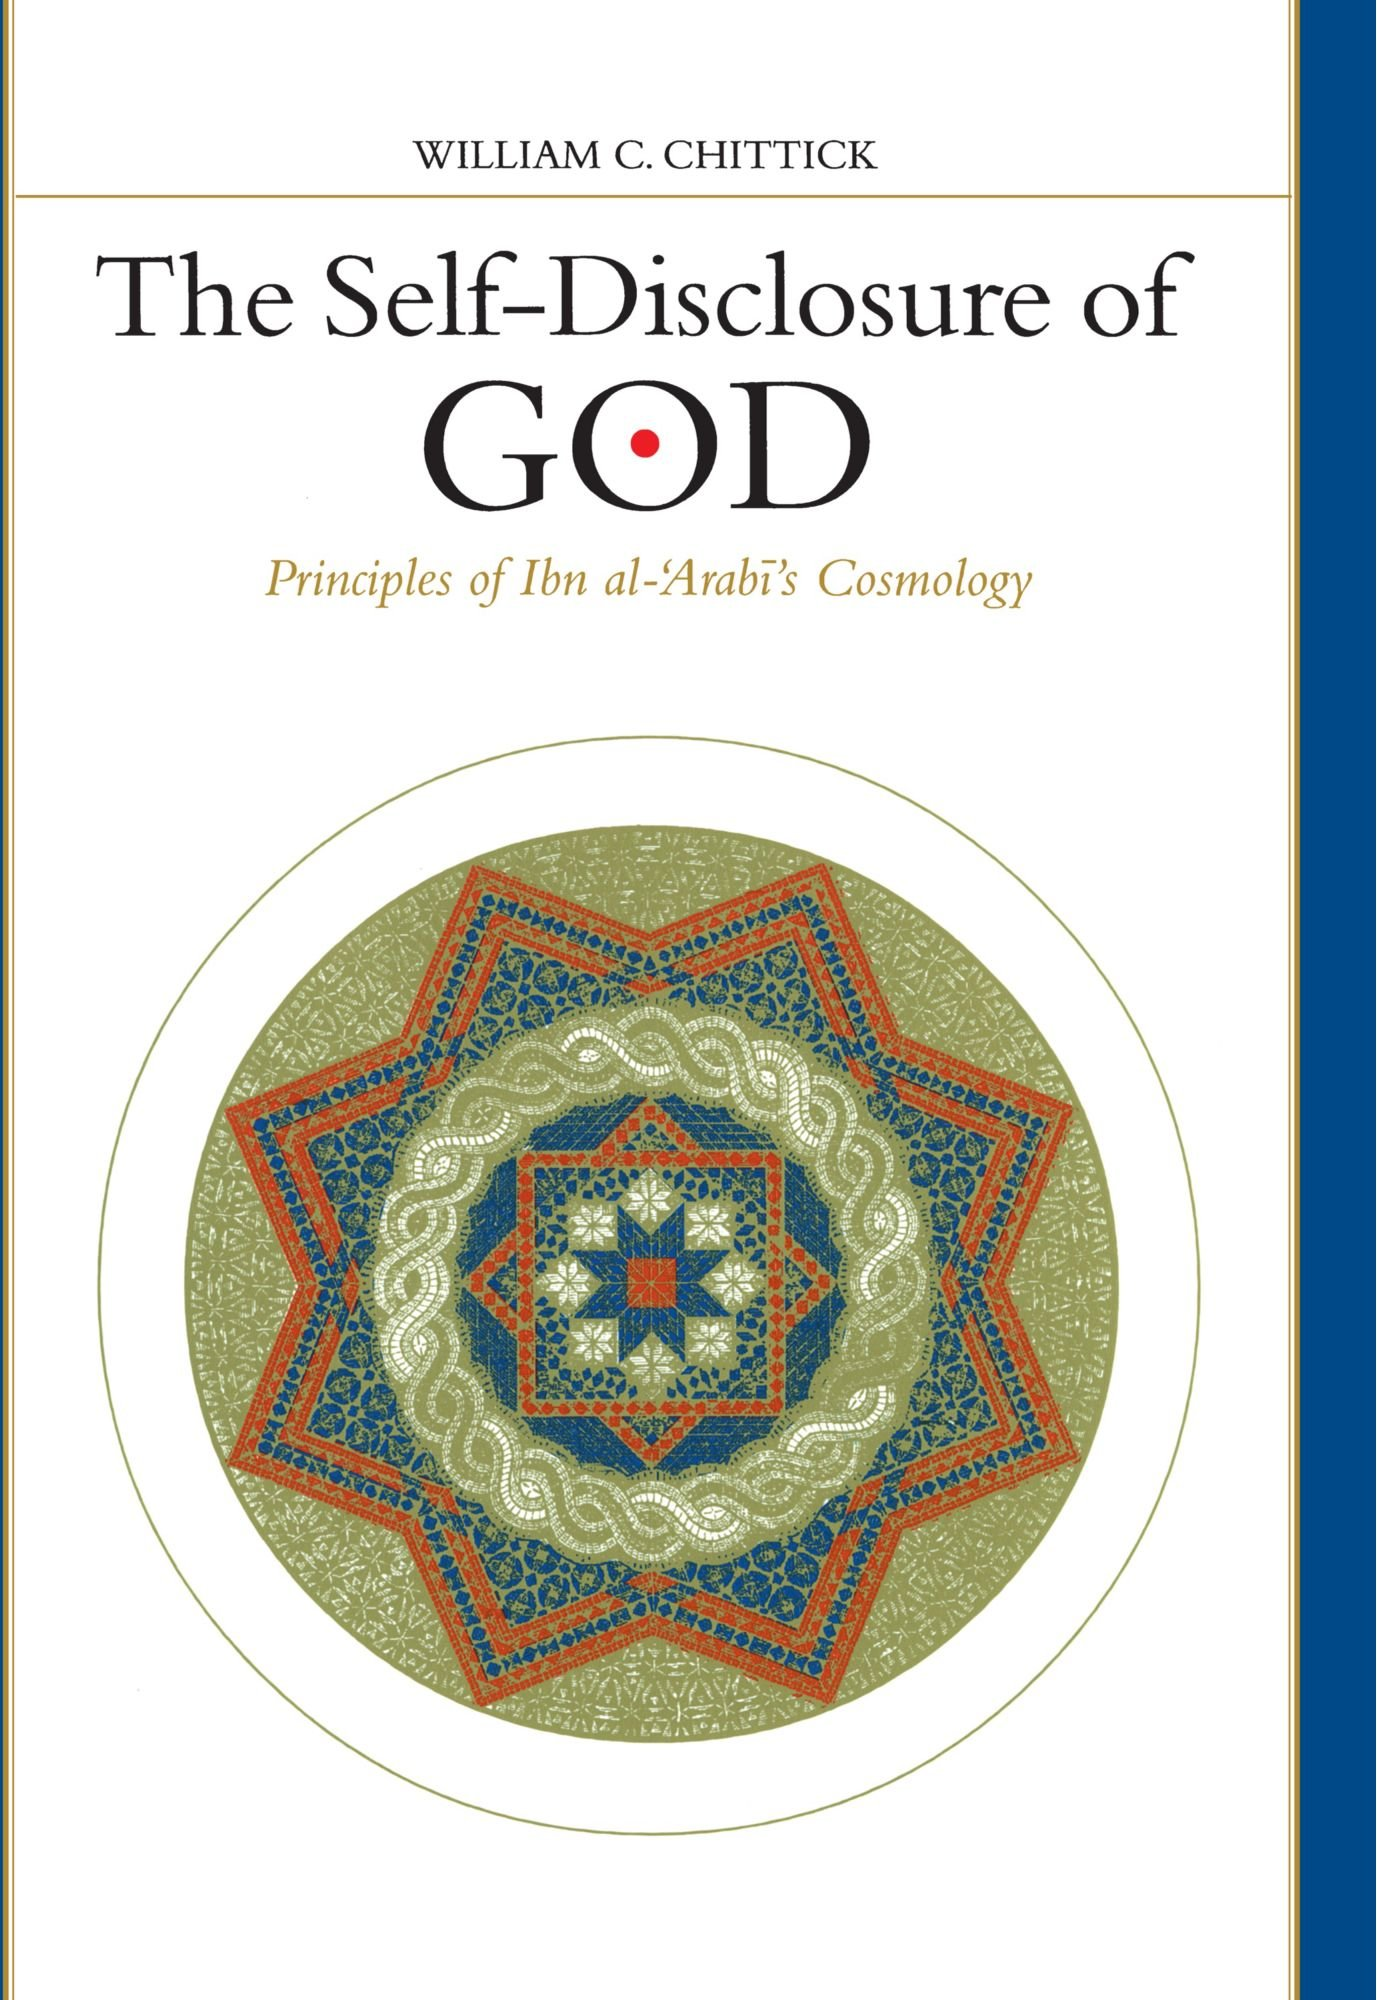 The Self-Disclosure of God: Principles of Ibn al-'Arabi's Cosmology (SUNY  series in Islam): William C. Chittick: 9780791434048: Amazon.com: Books